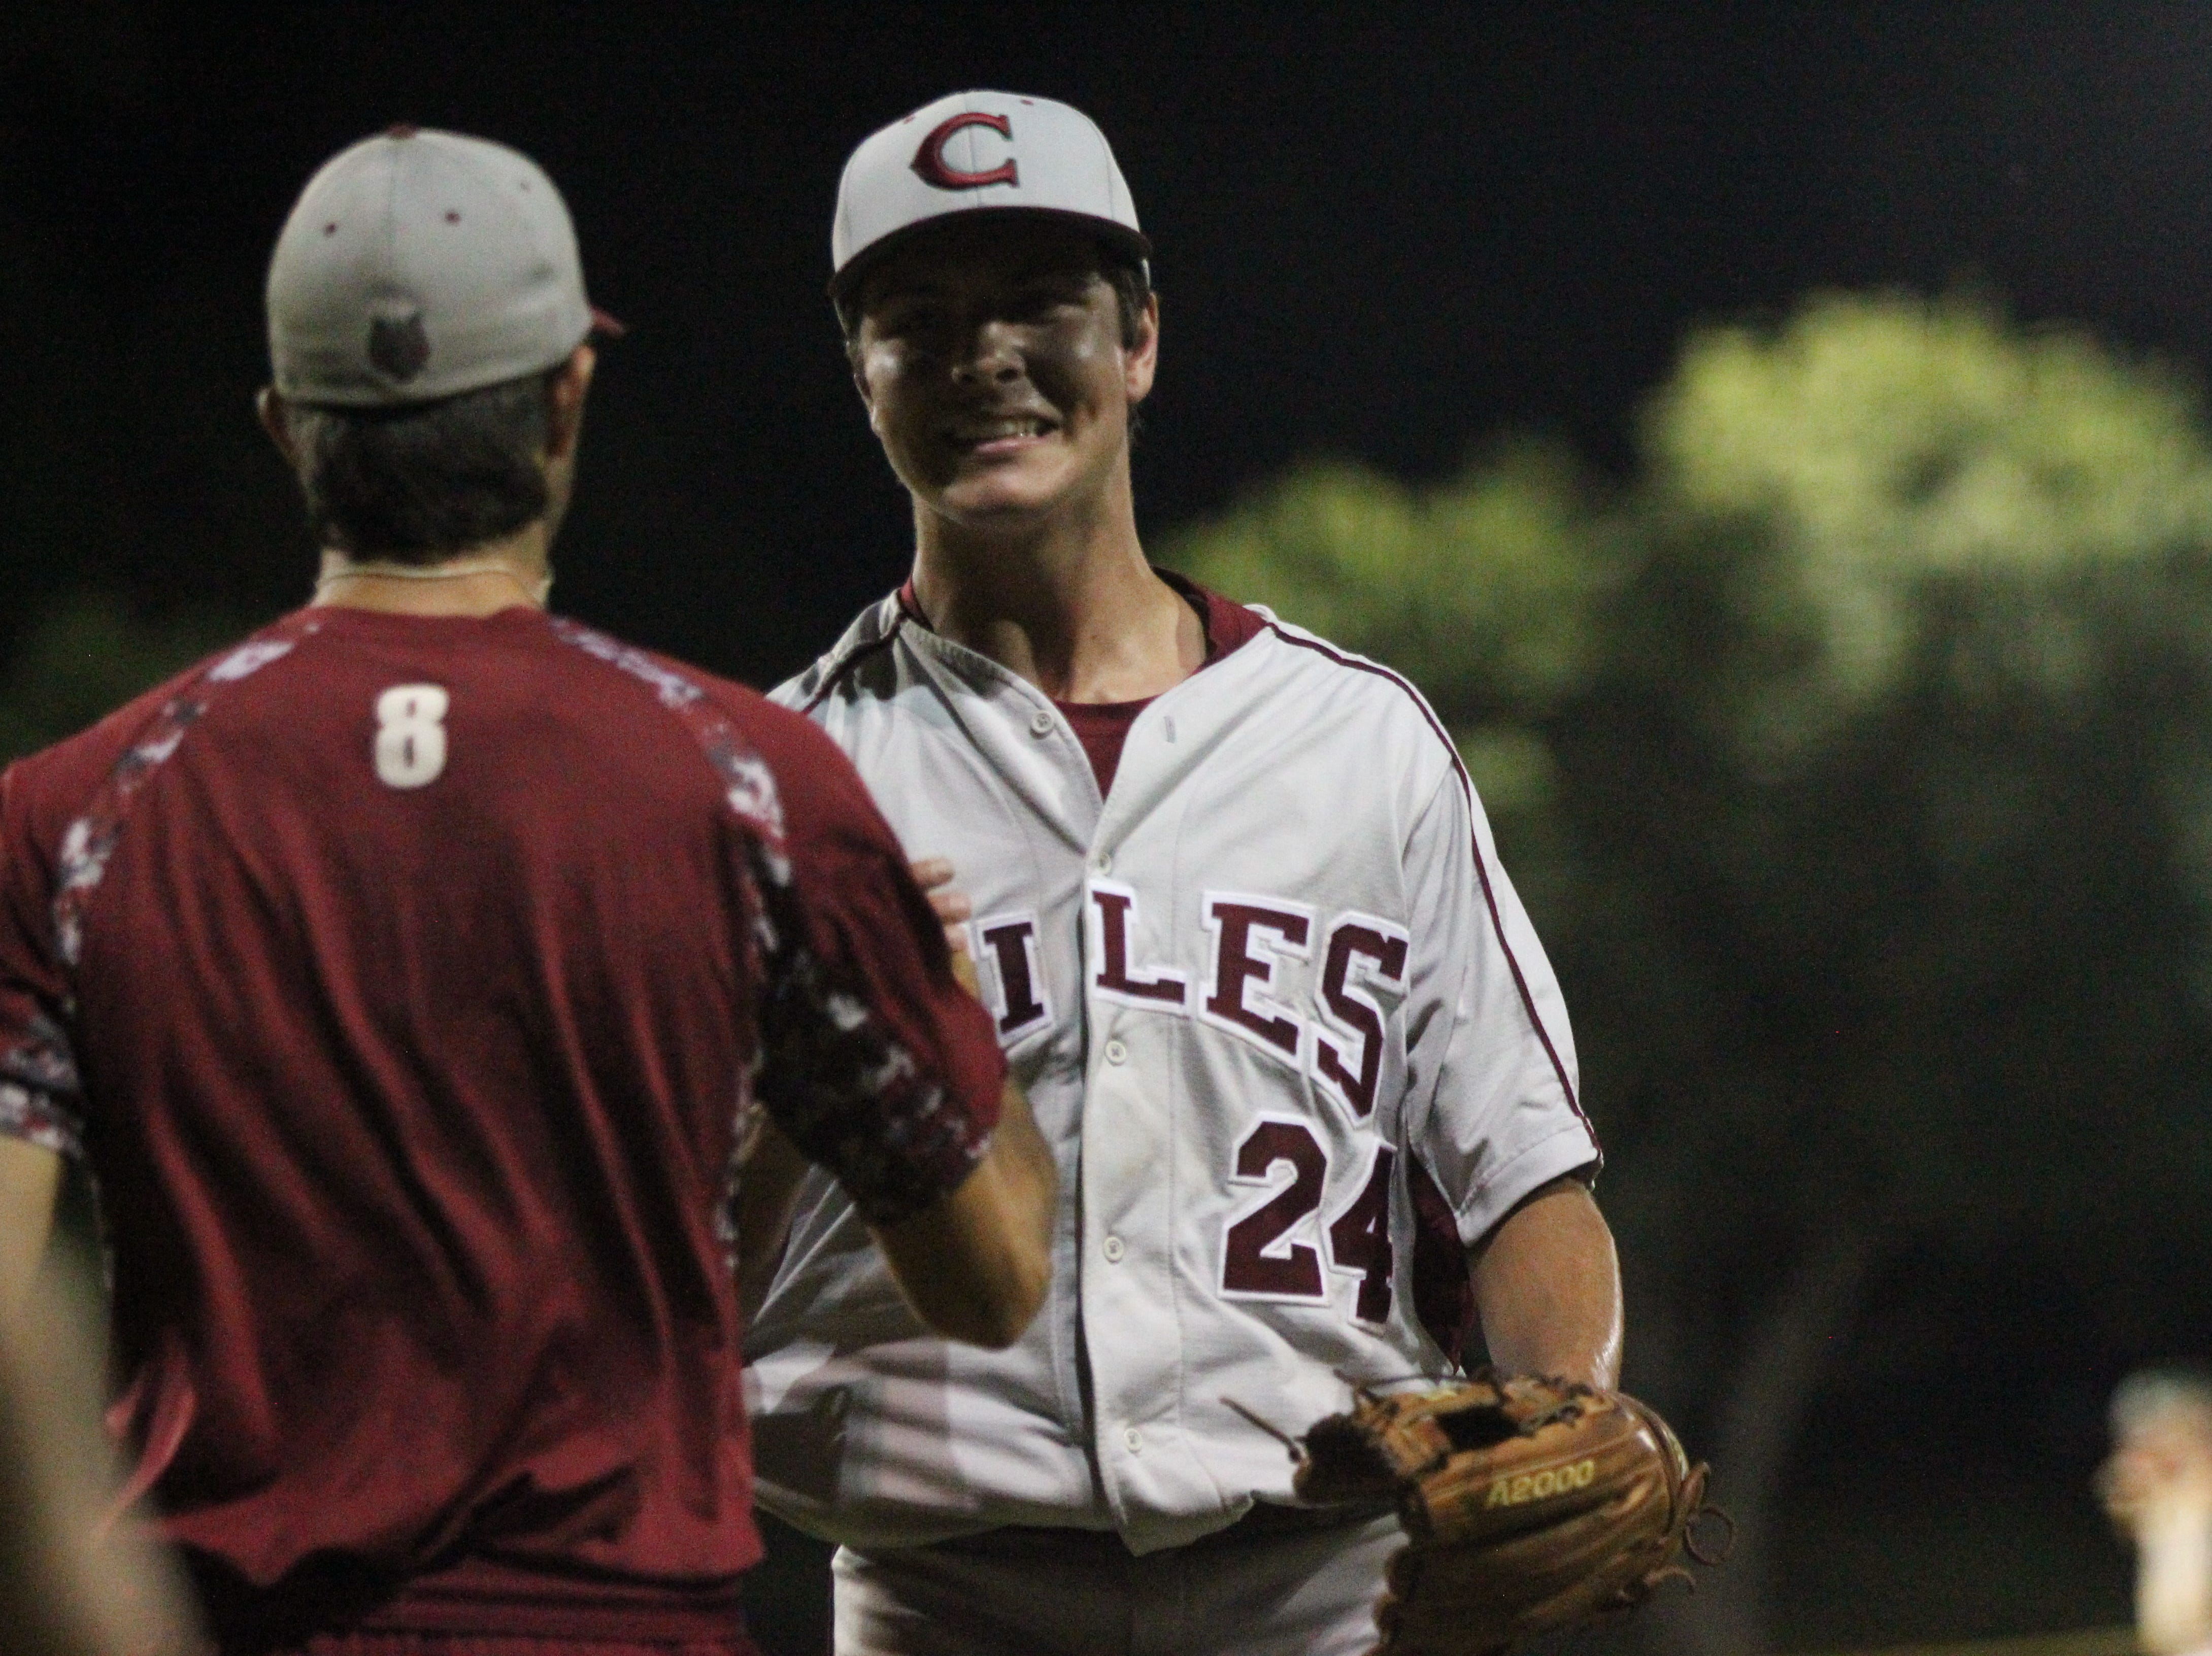 Chiles pitcher Bryson Cooksey reacts after an inning-ending strikeout as Lincoln baseball beat Chiles 5-4 in 10 innings during a District 2-8A championship game on Thursday, May 9, 2019.